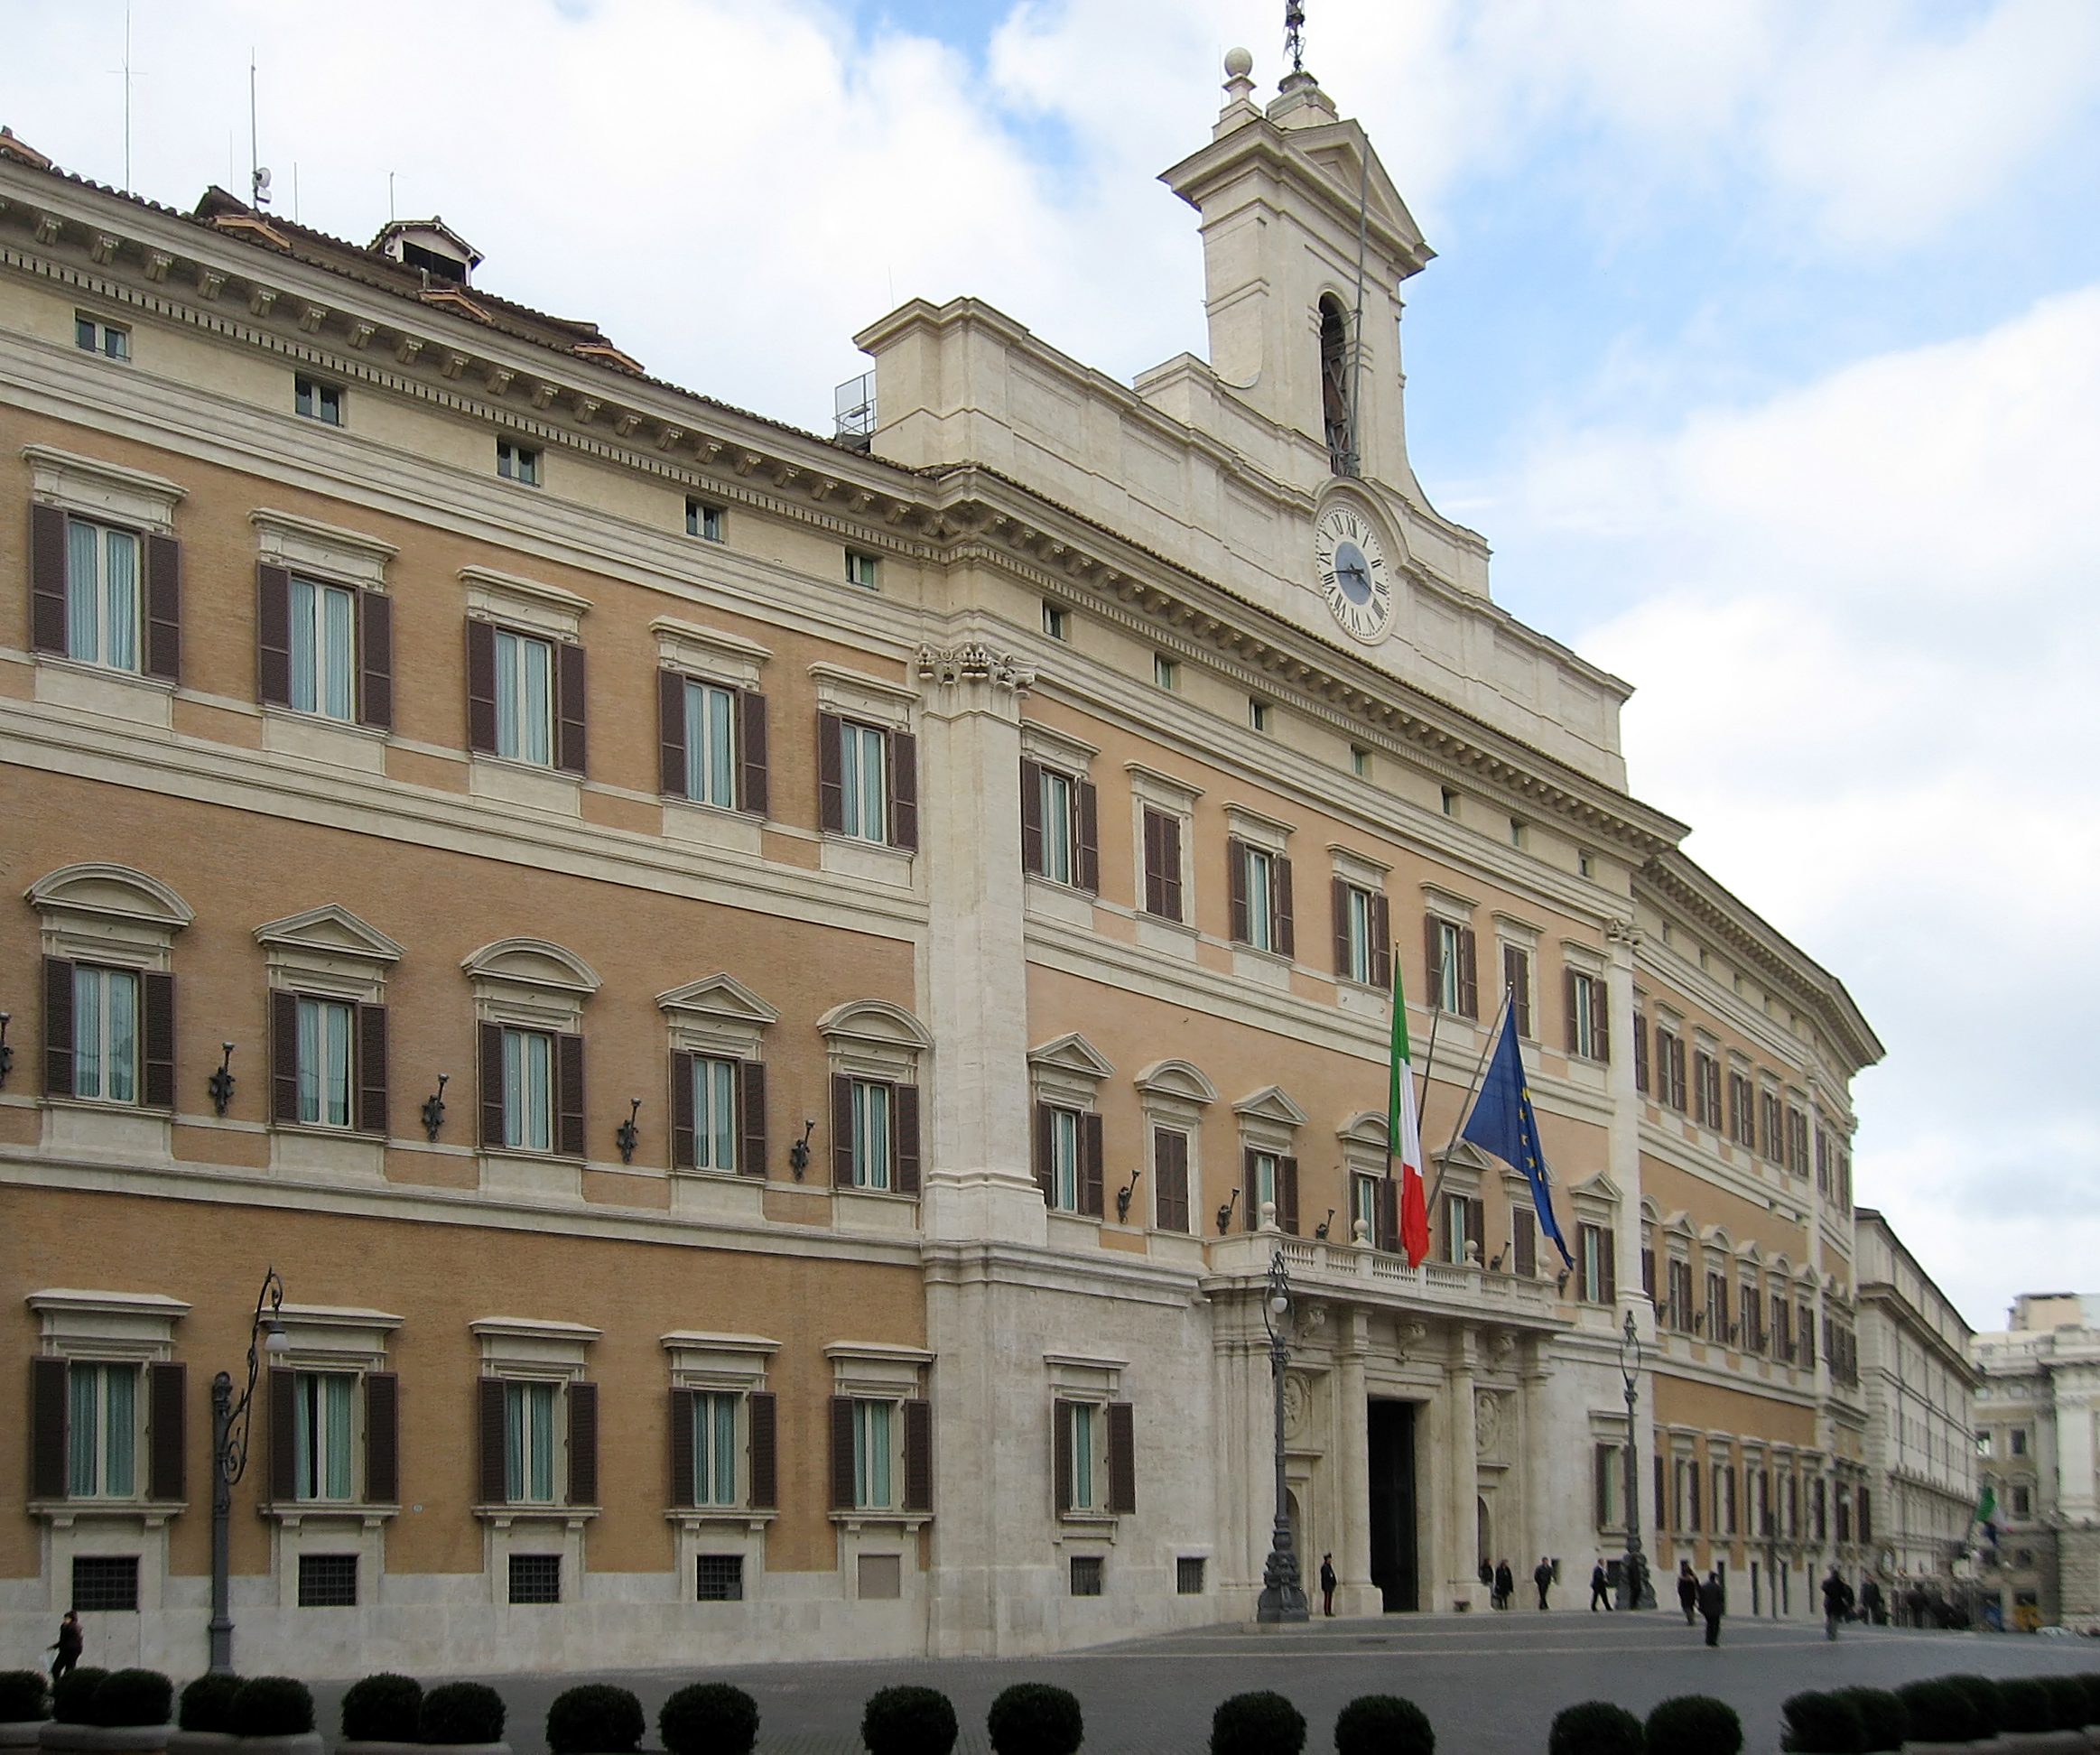 Depiction of Palazzo Montecitorio